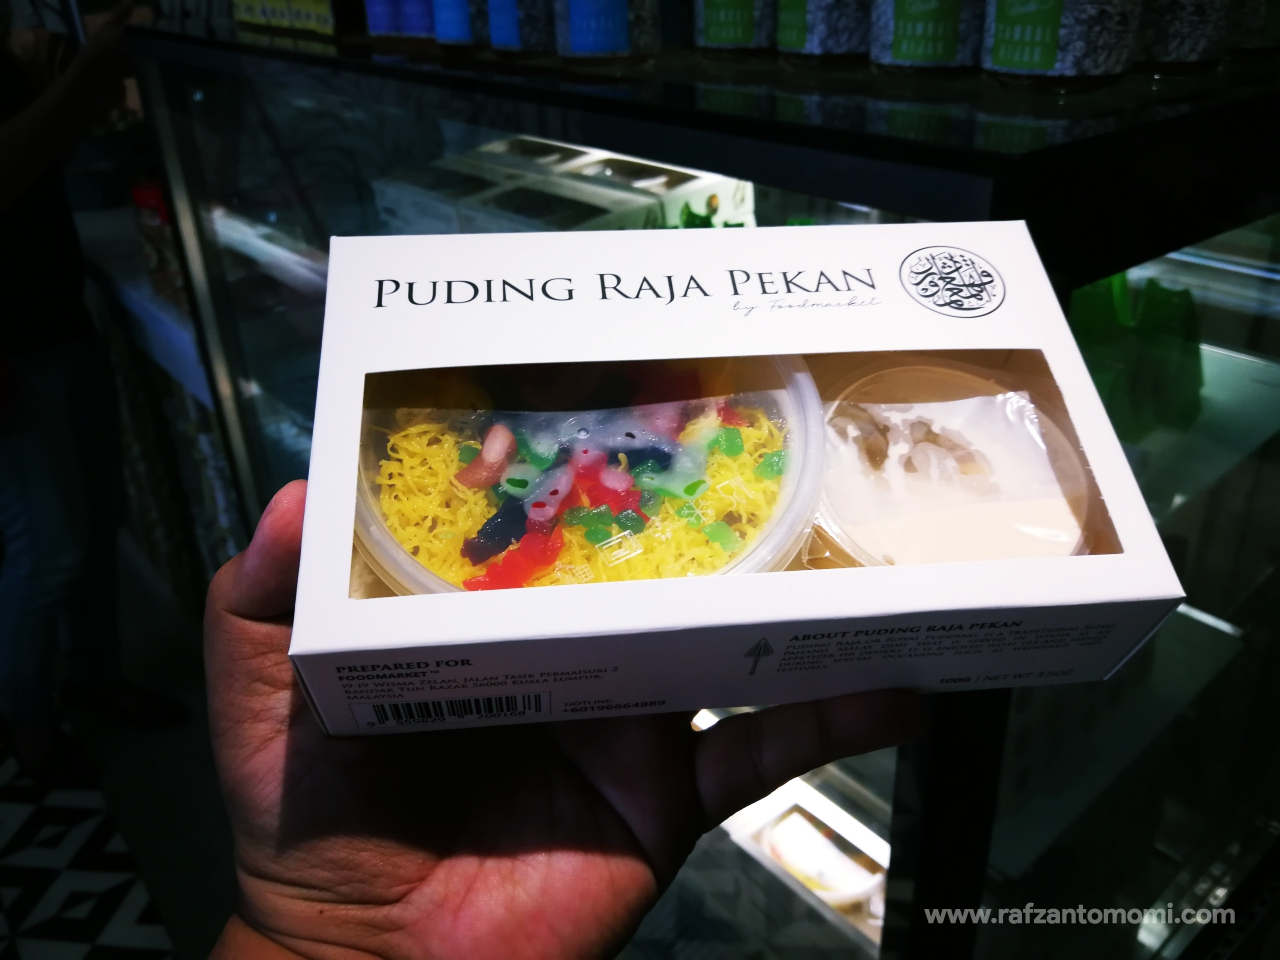 Puding Raja Pekan by Food Market